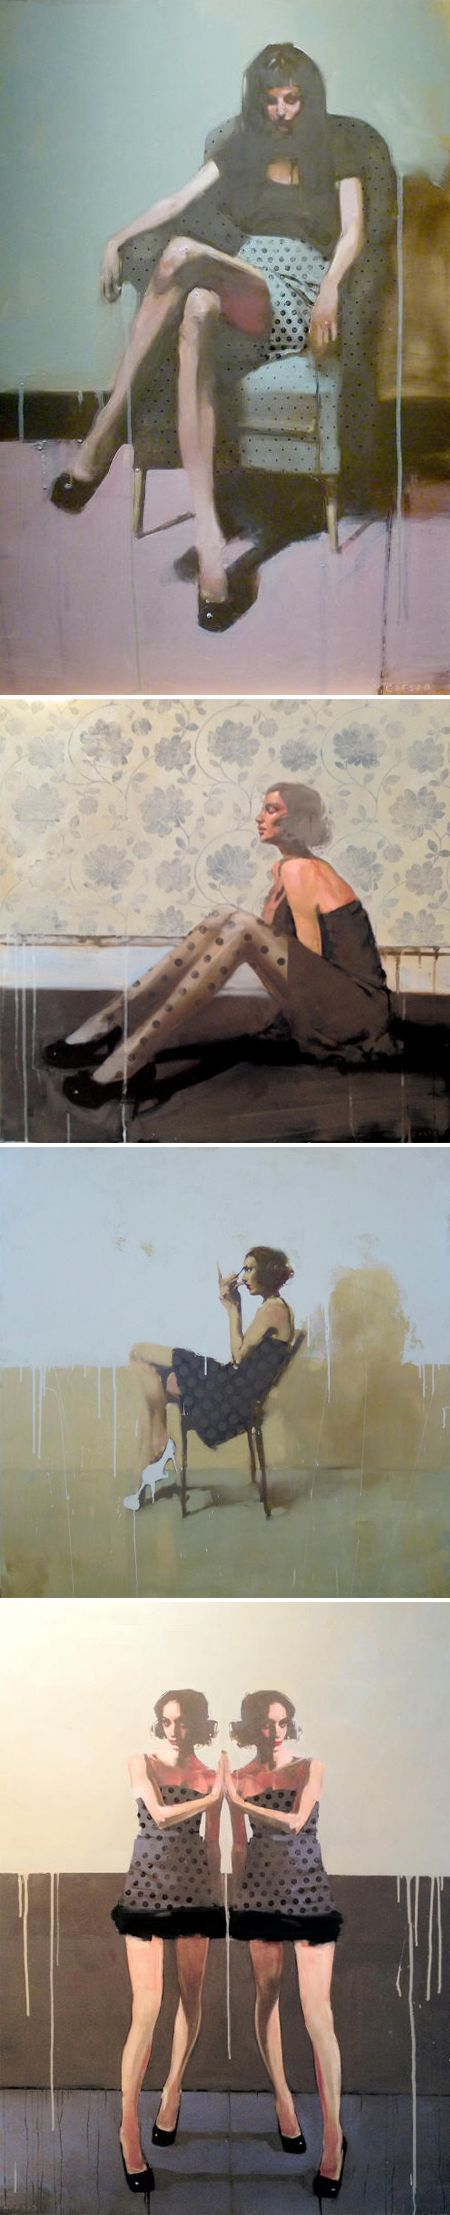 The Jealous Curator » Blog Archive » i'm still jealous of michael carson